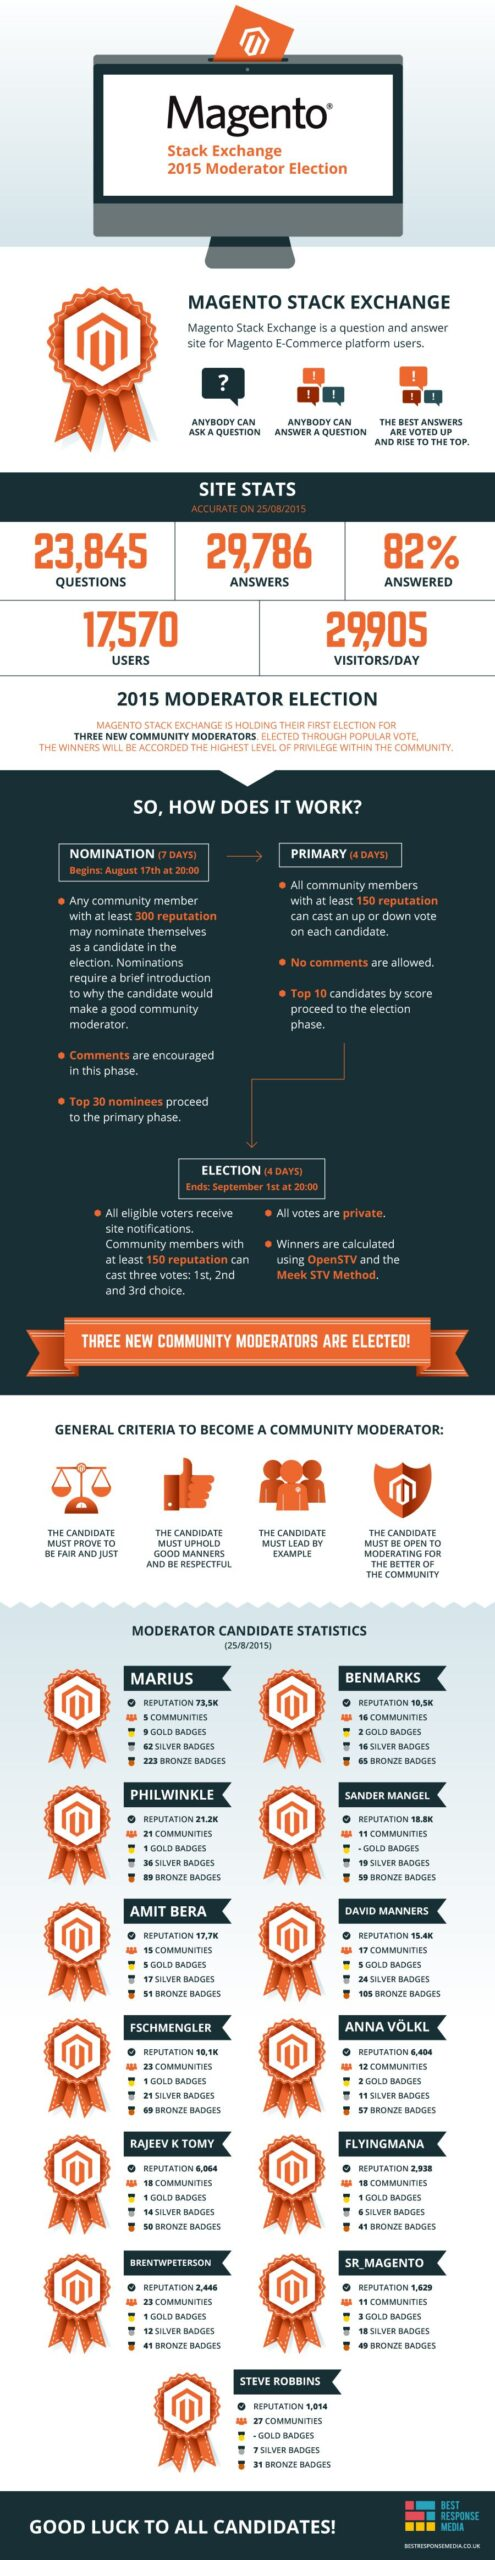 Magentoelections-infographic